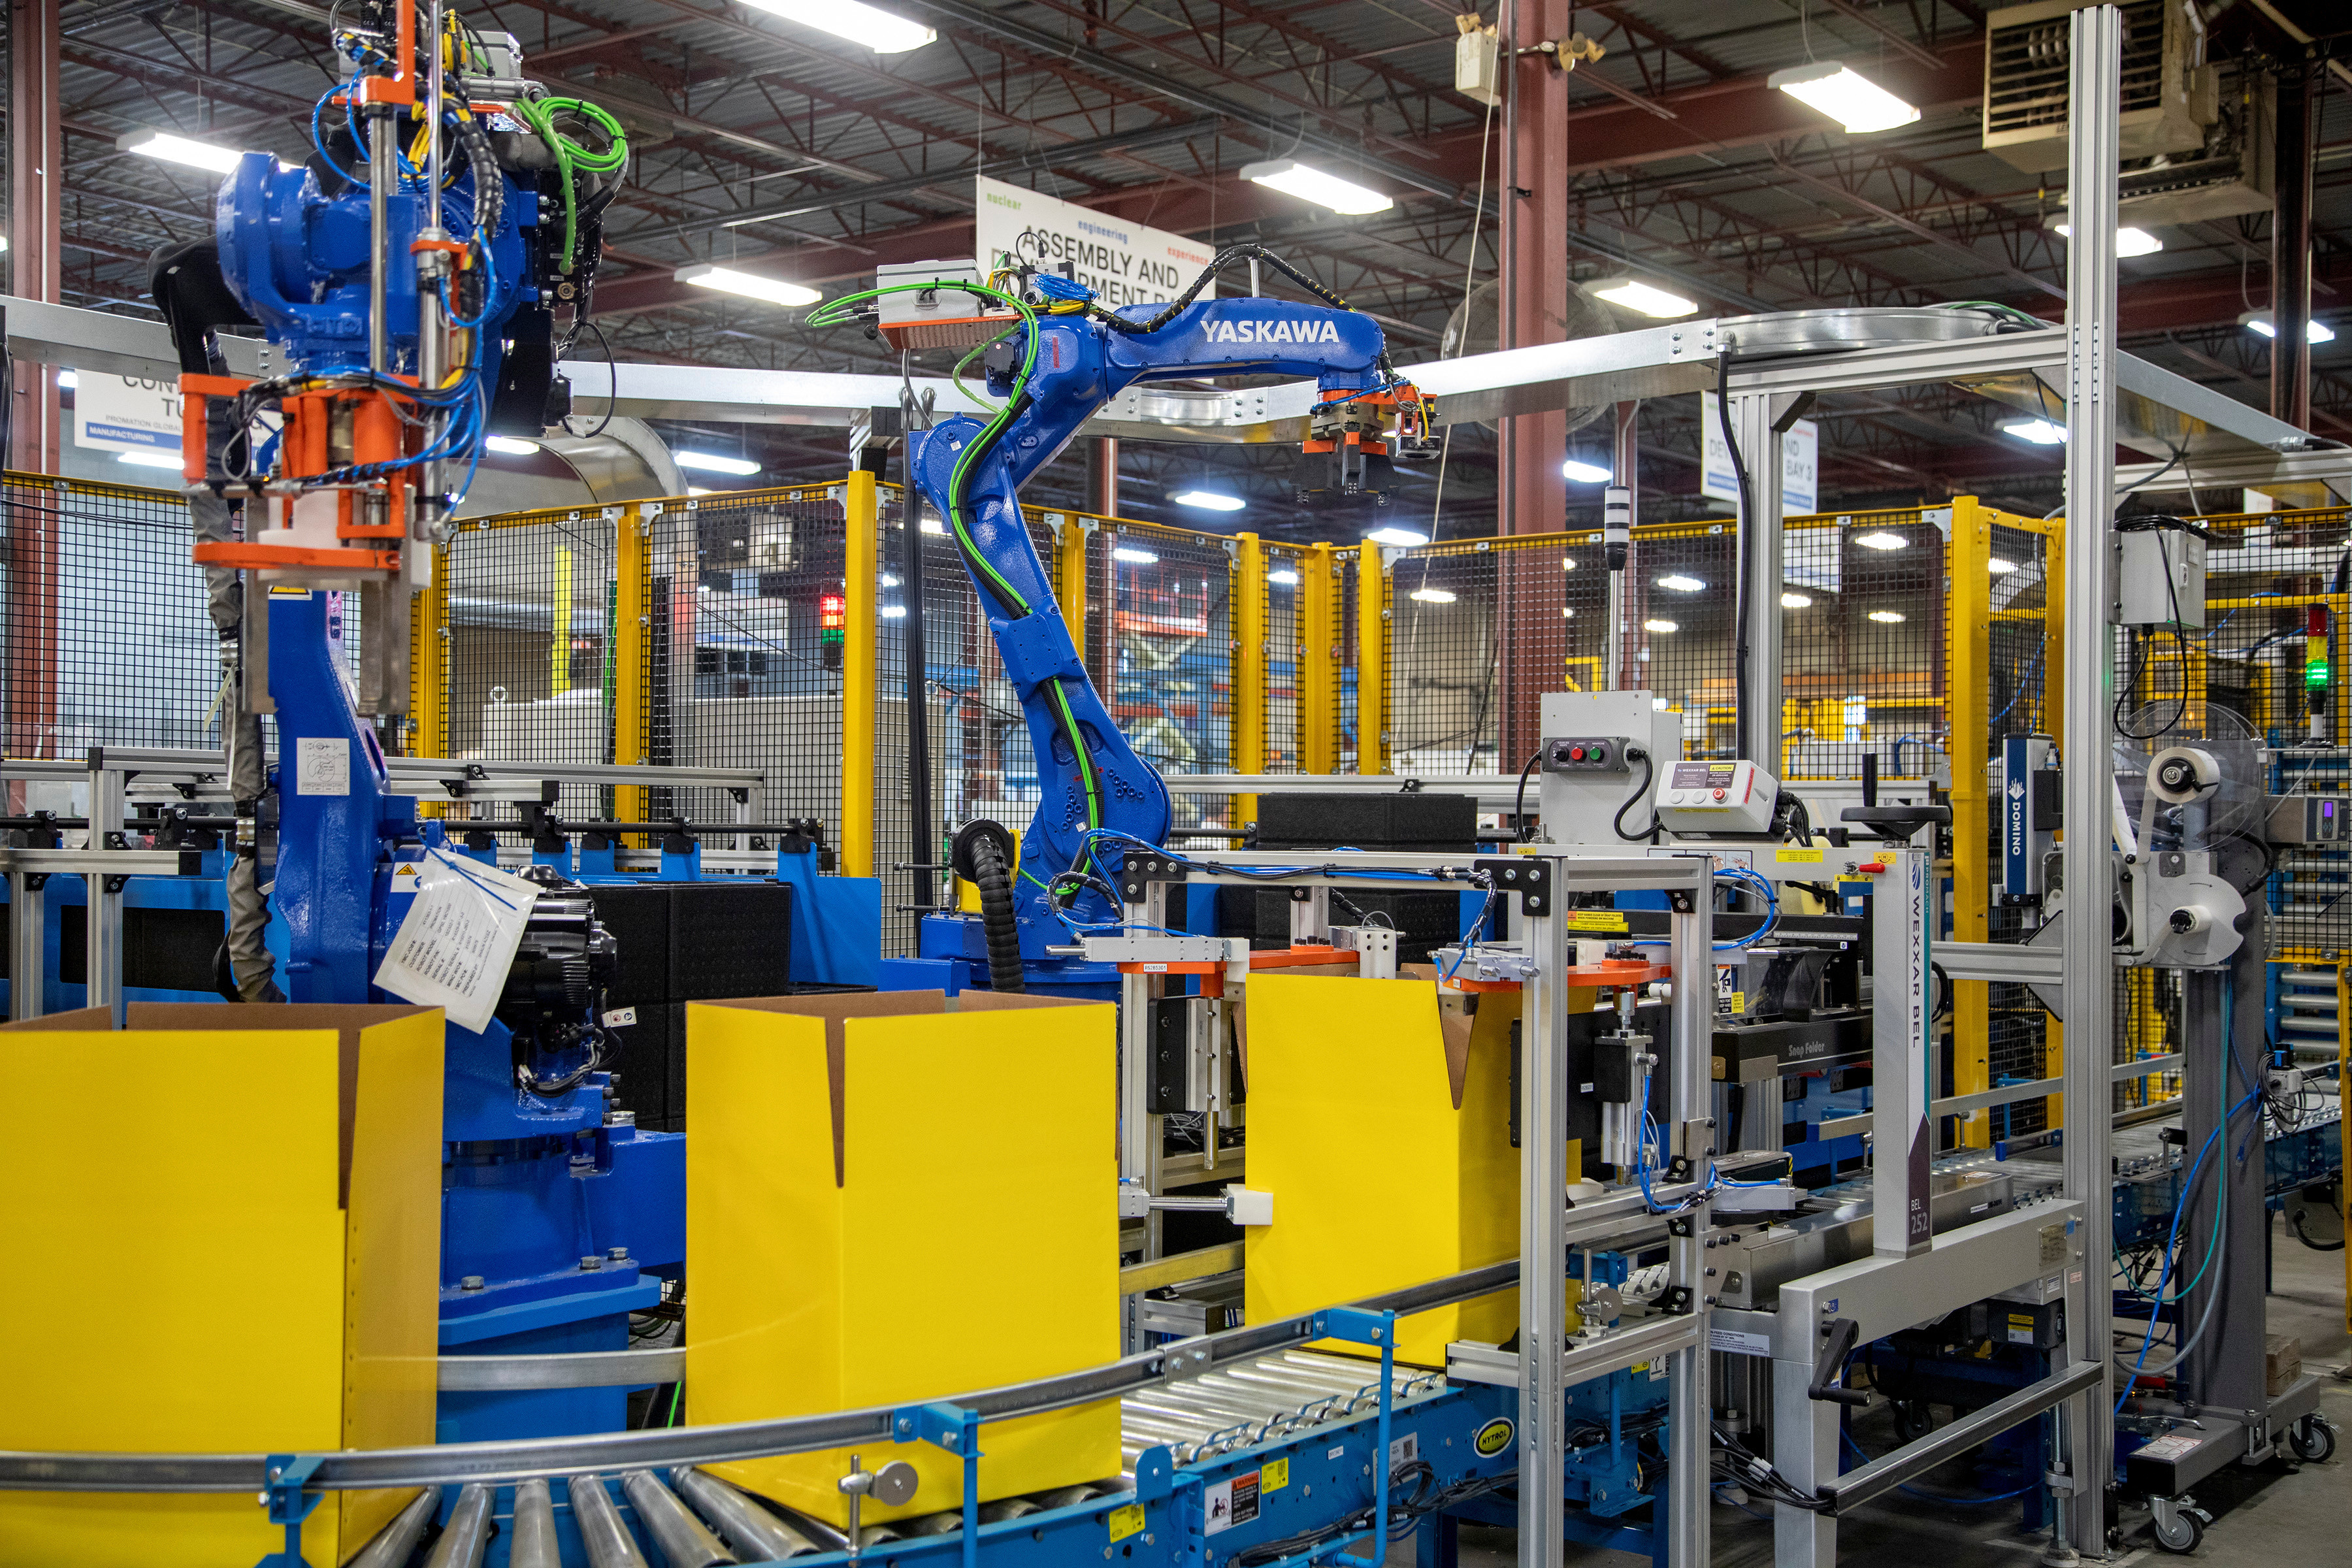 an automated packing line at Promation, a robotics engineering and automation manufacturing firm in Oakville, Ontario, Canada